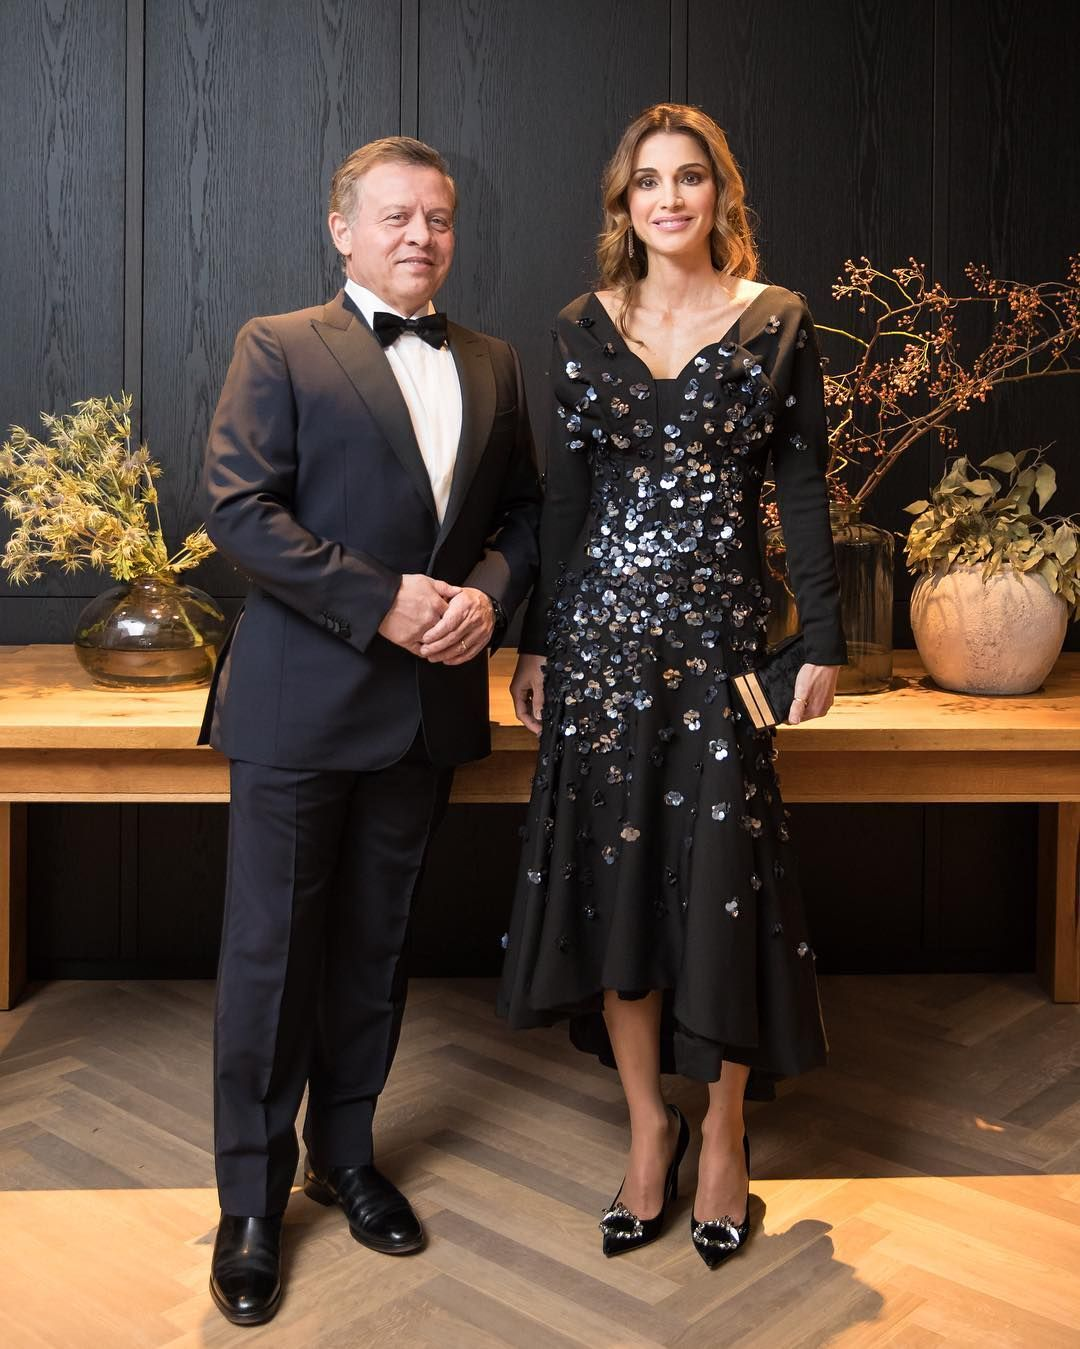 7 October 2016 - King Abdullah bin Al-Hussein receives Westphalian Peace  Prize in Münster, Germany - dress and shoes by Dior